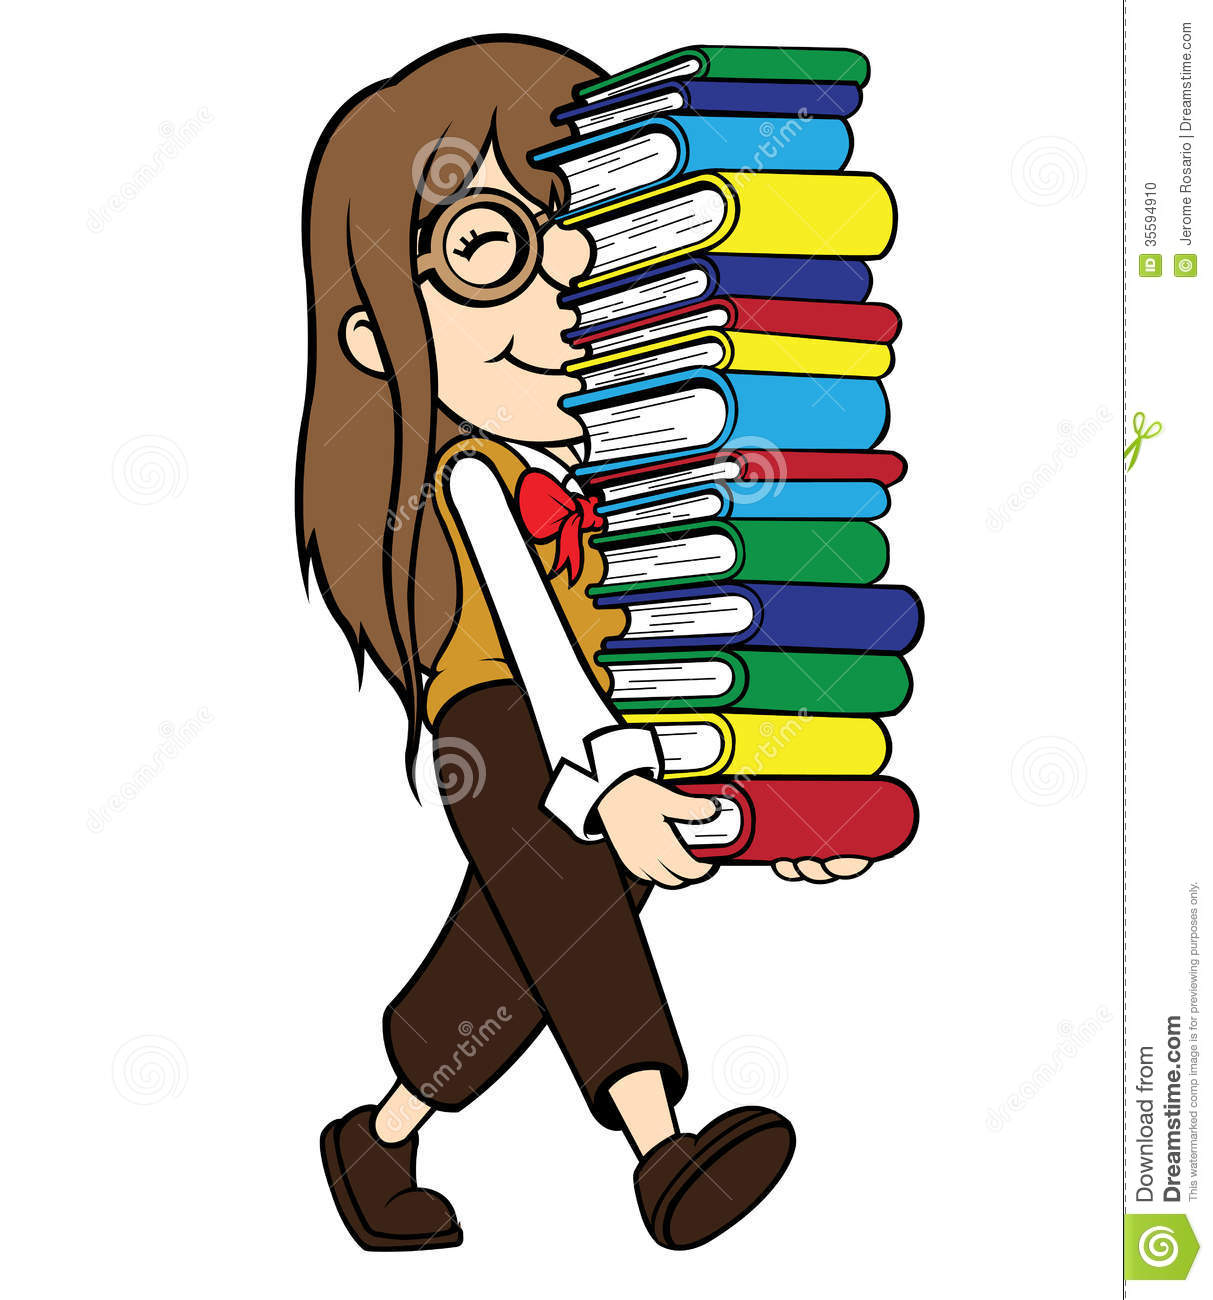 Woman with books clipart svg freeuse stock Woman carrying stack of books clipart - ClipartFest svg freeuse stock